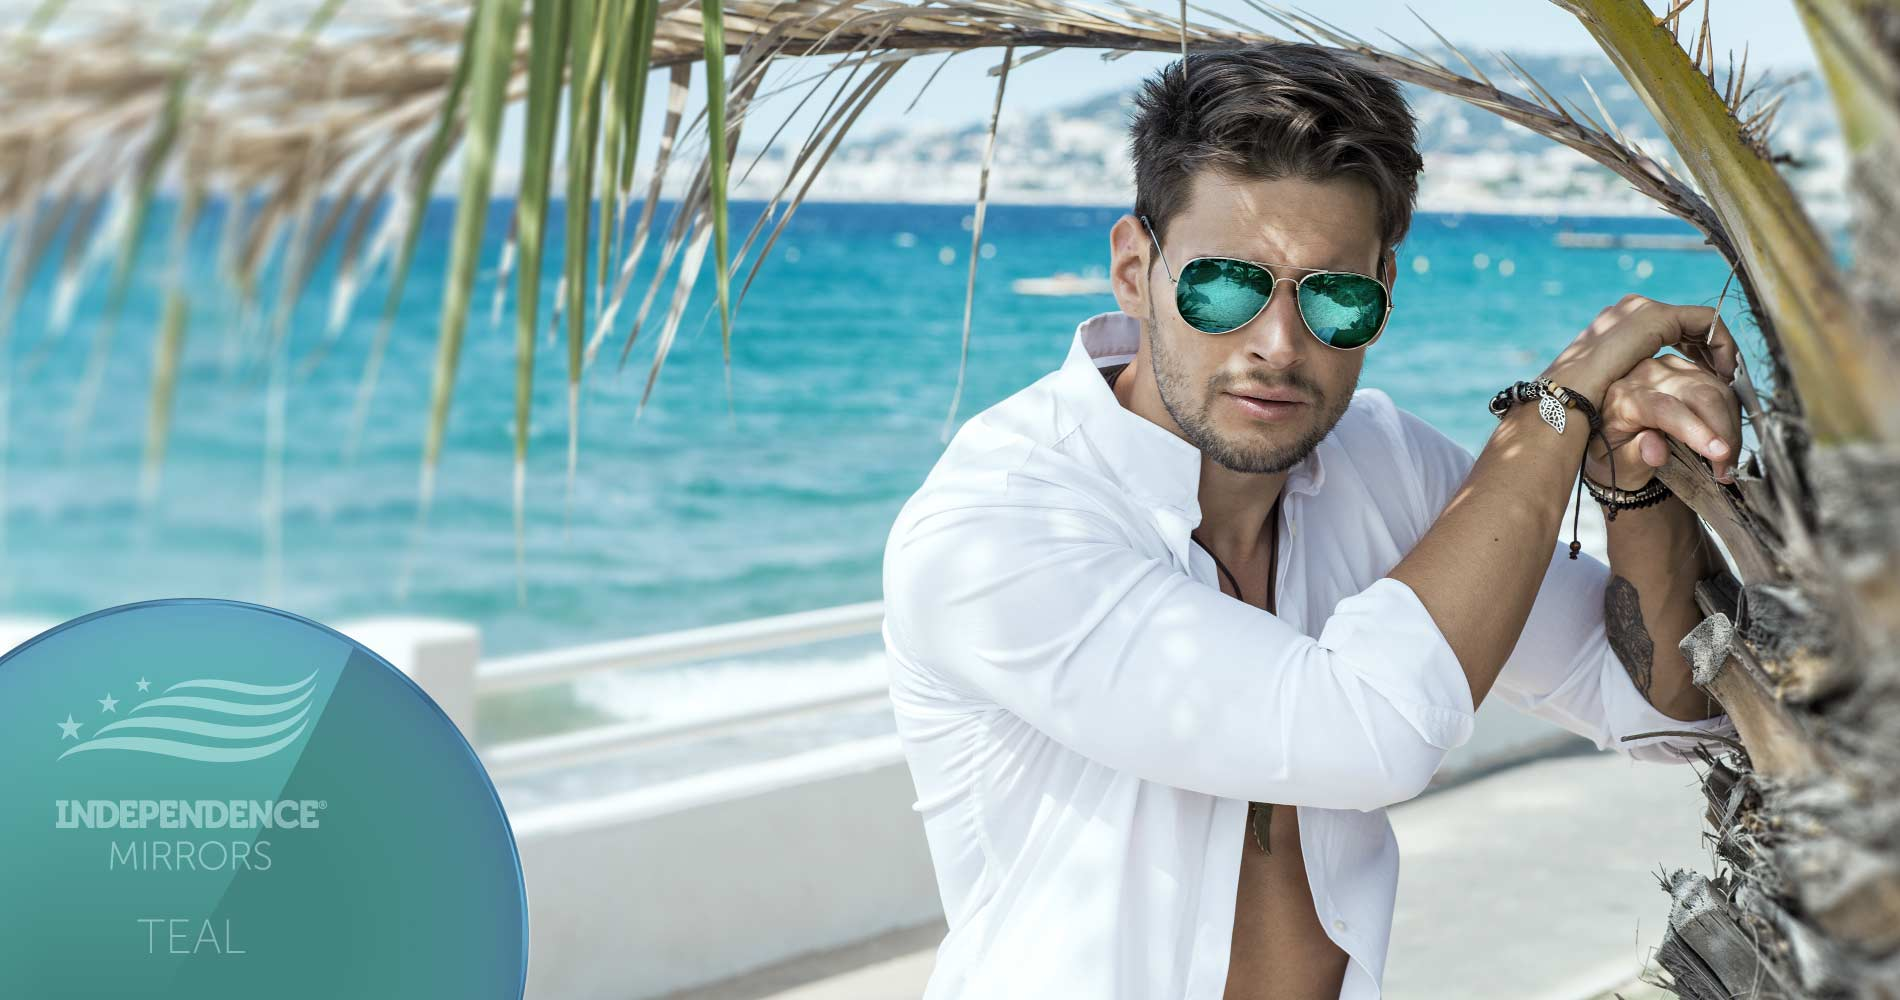 Man standing underneath a palm tree on the beach, wearing teal-colored mirrored sunglasses